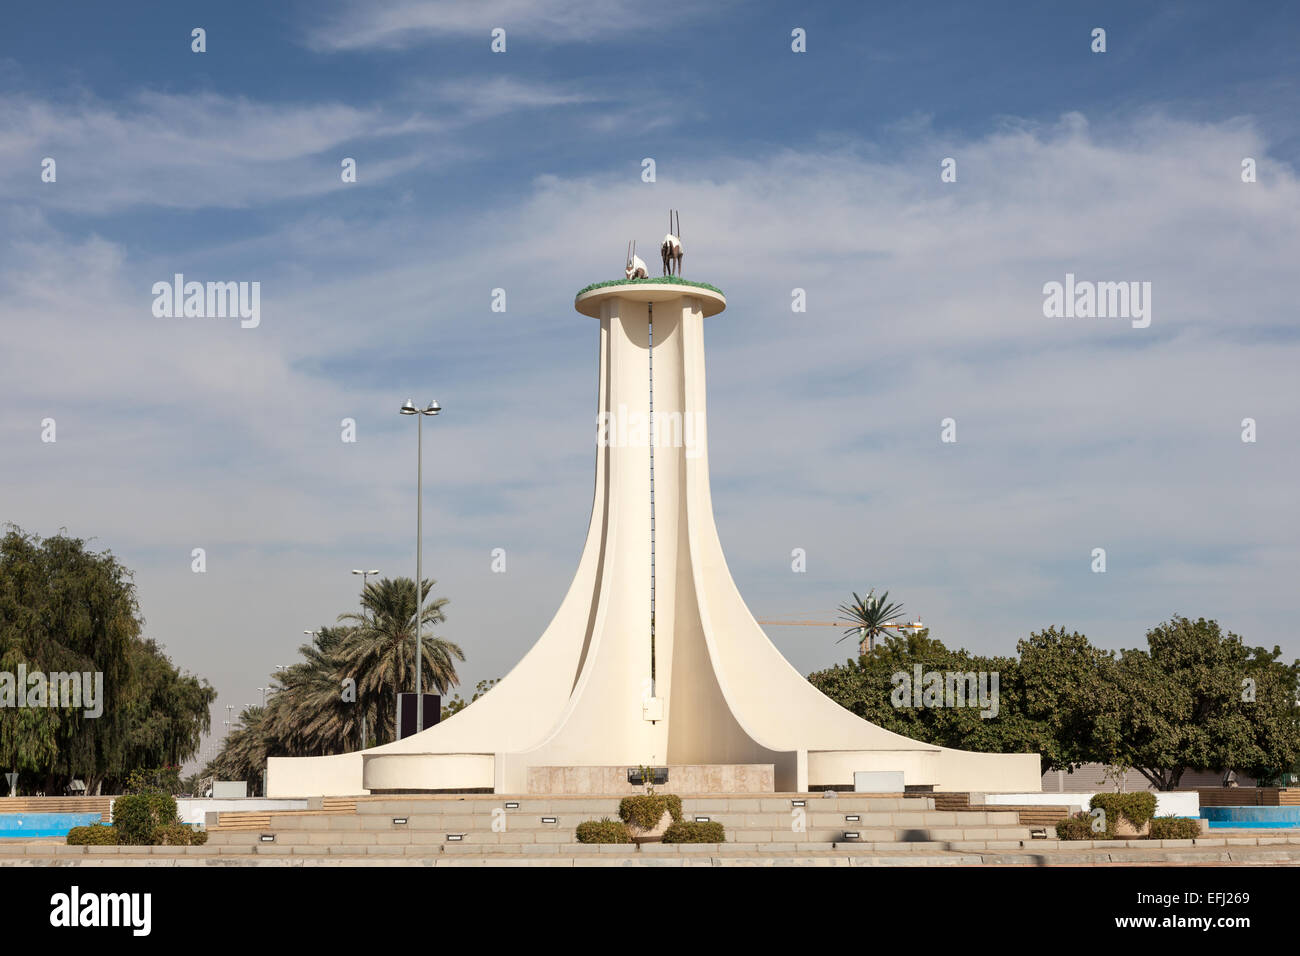 Oryx monument in a roundabout in al ain city emirate of for Diwan roundabout al ain